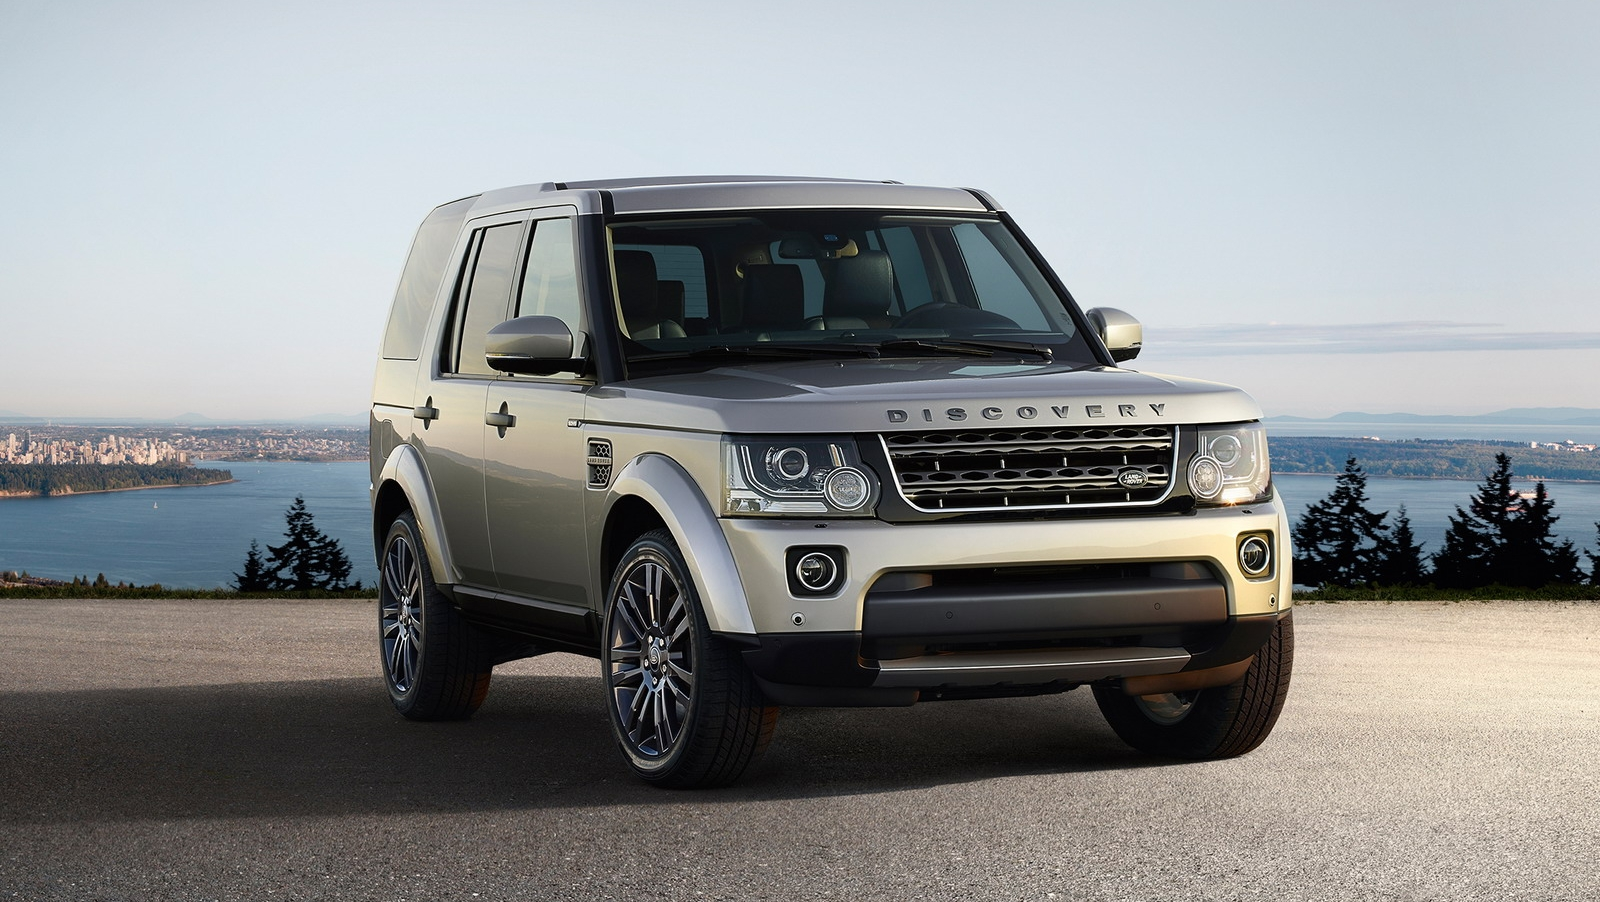 2016 land rover discovery graphite review gallery top speed. Black Bedroom Furniture Sets. Home Design Ideas